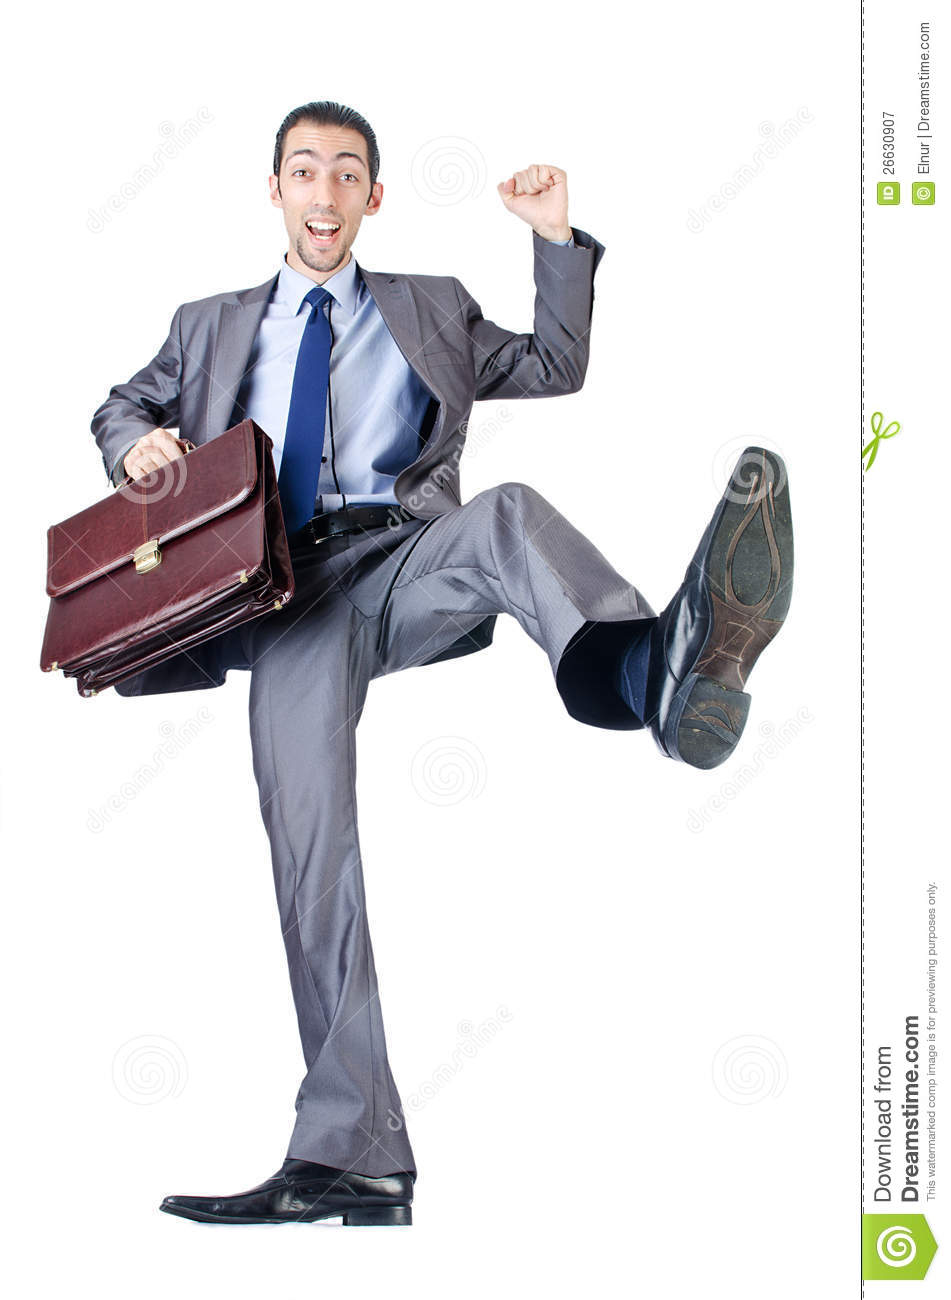 Man With Briefcase Royalty Free Stock Photography - Image: 26630907